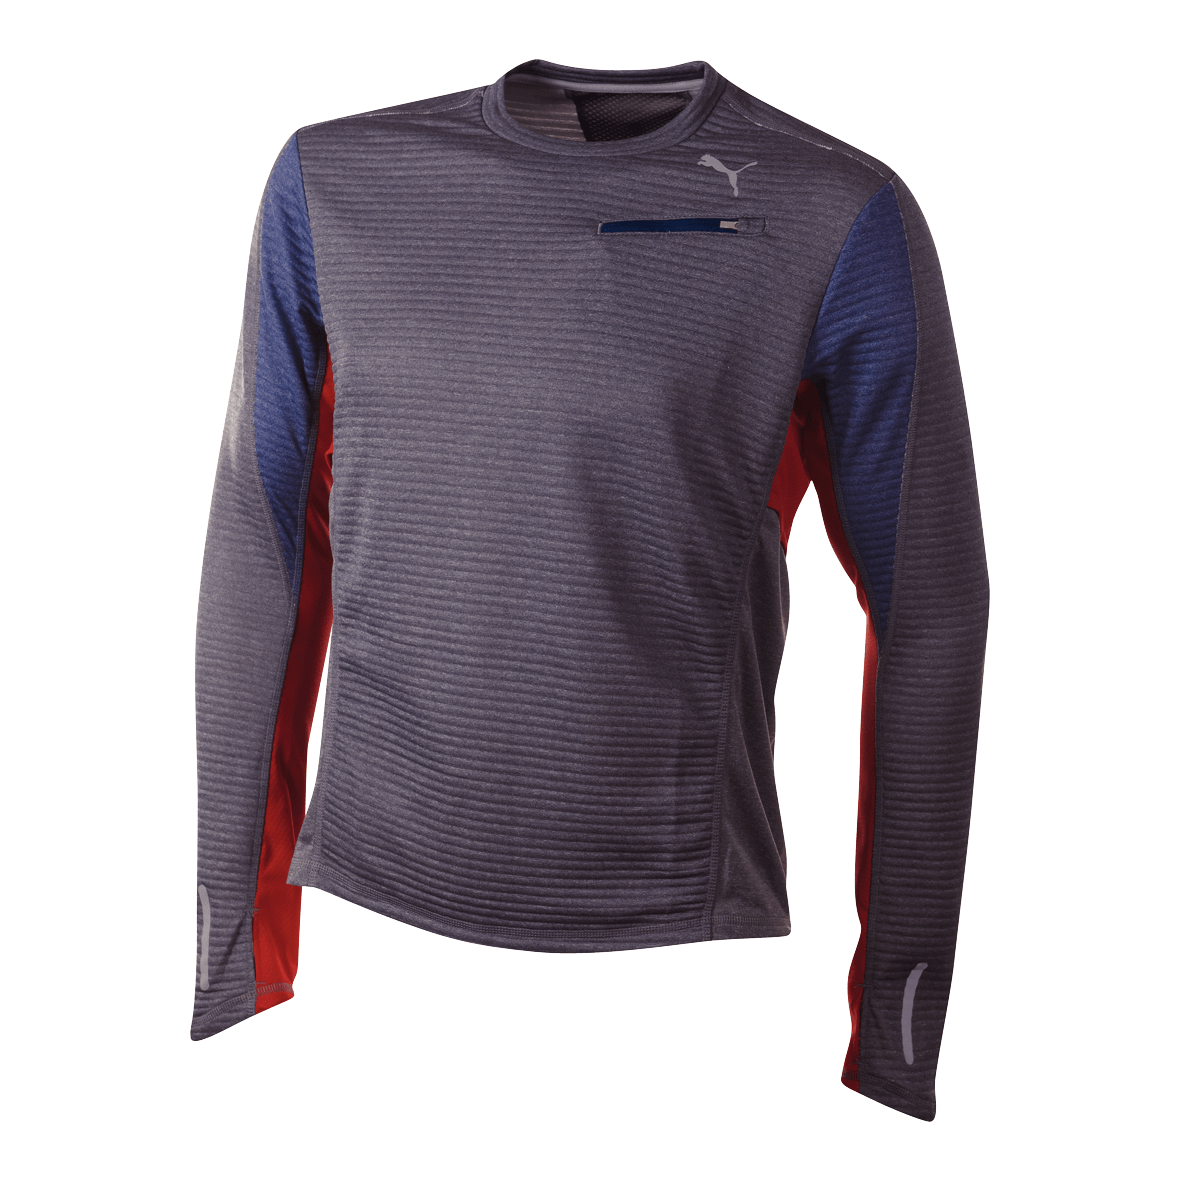 Puma cross warm tee l/s fra Puma på billigsport24